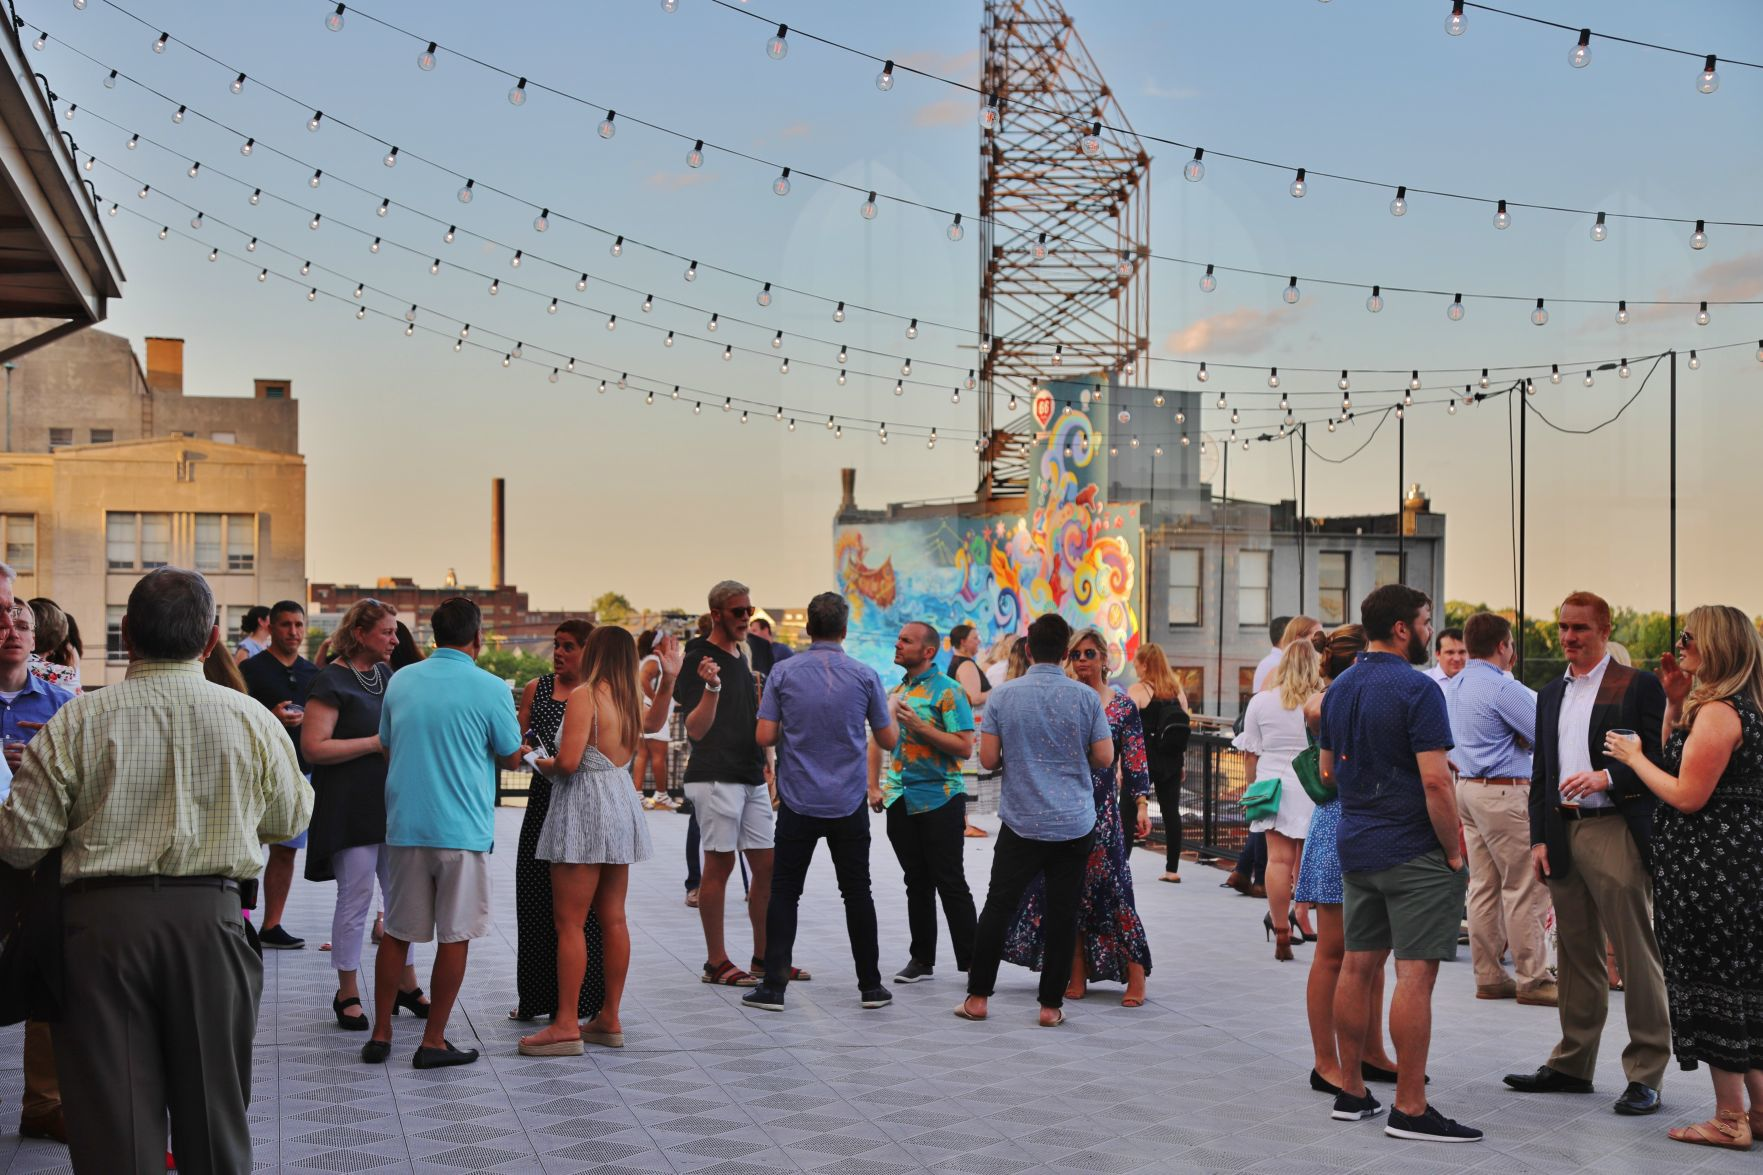 Guests on a rooftop patio of the Centene Center for the Arts